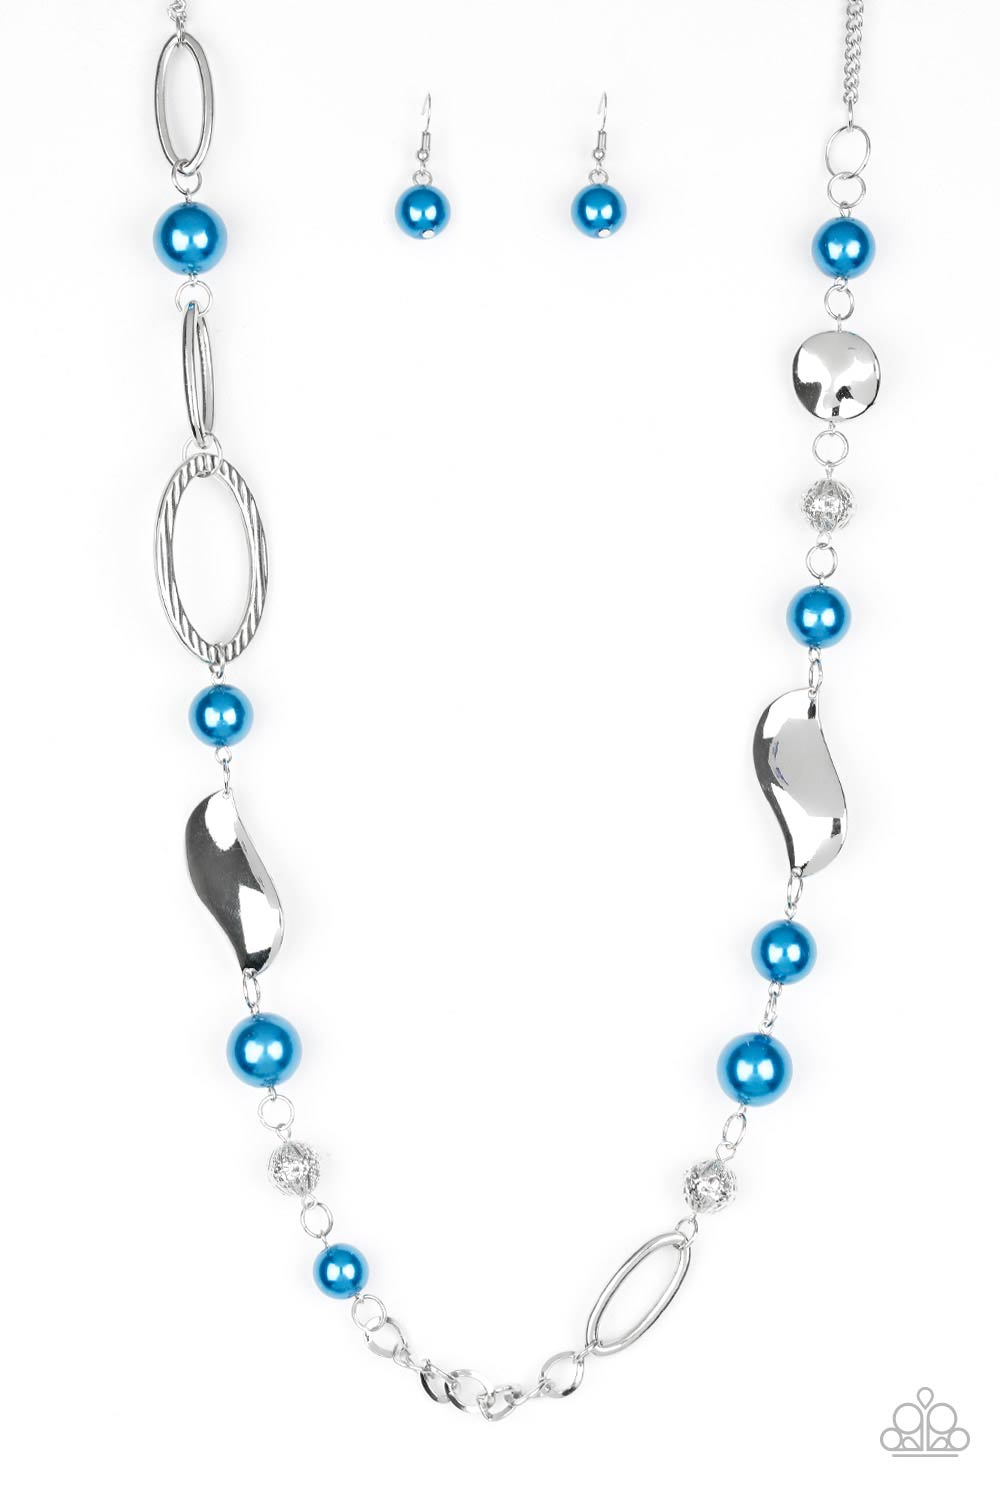 Paparazzi Necklace - All About Me - Blue